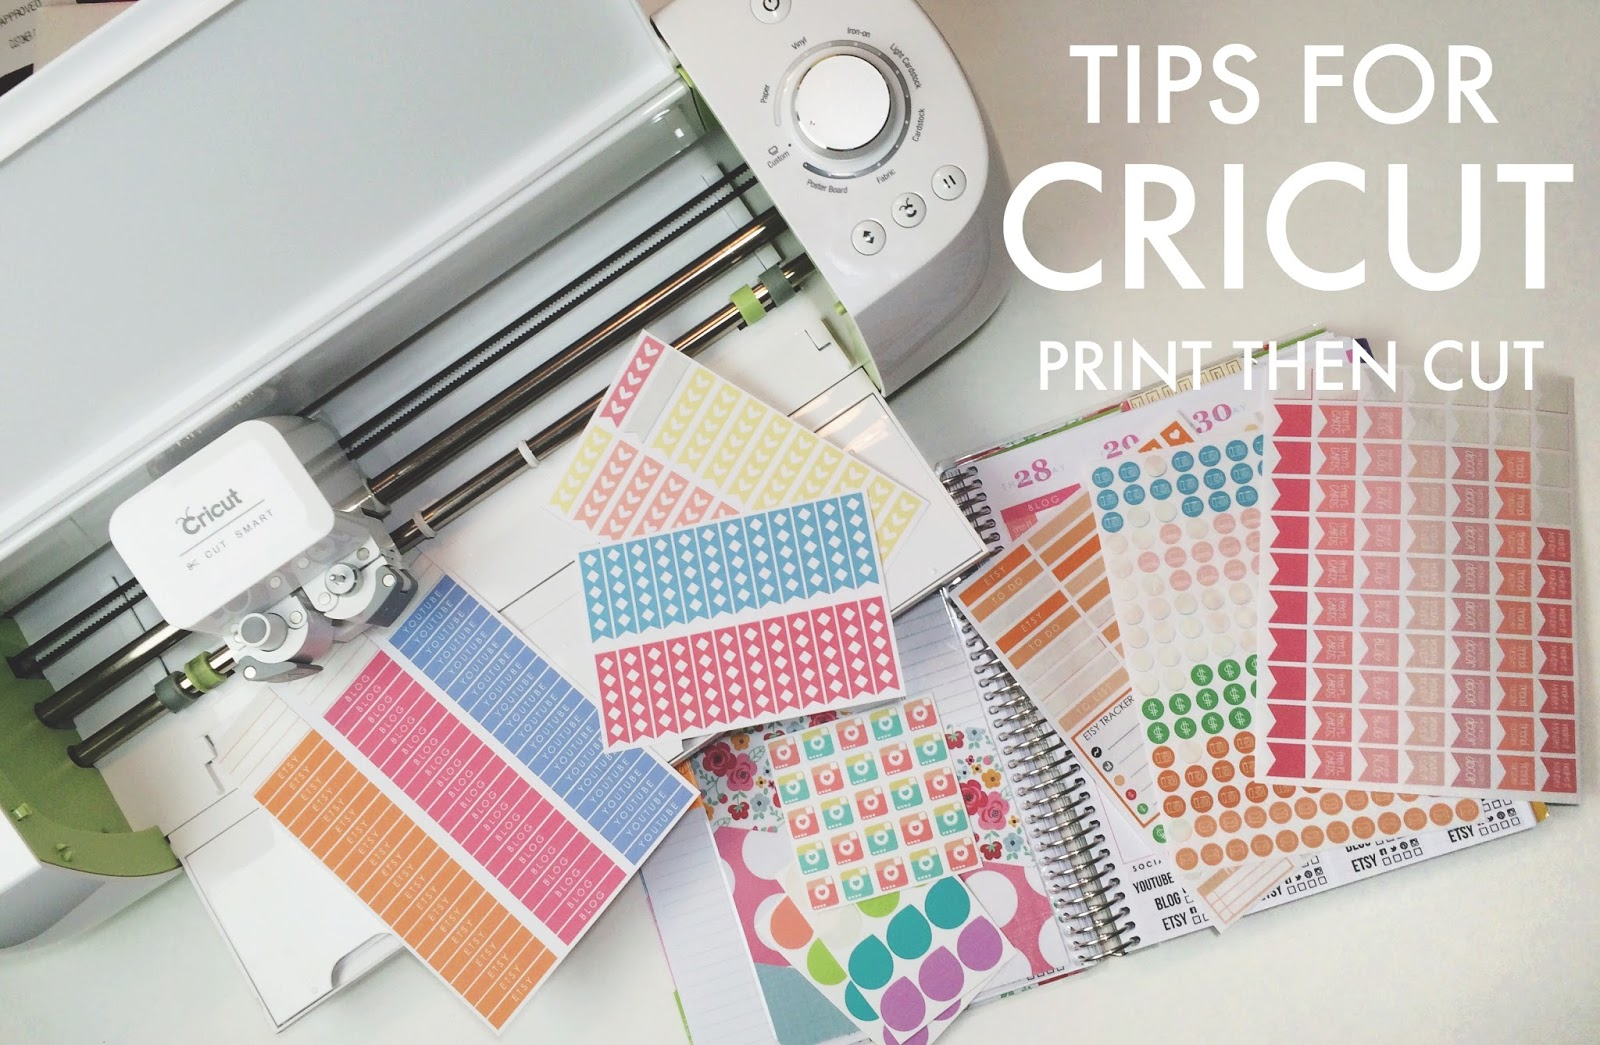 Five Sixteenths Blog Tips For Cricut Explore Print Then Cut - How to make vinyl decals using cricut